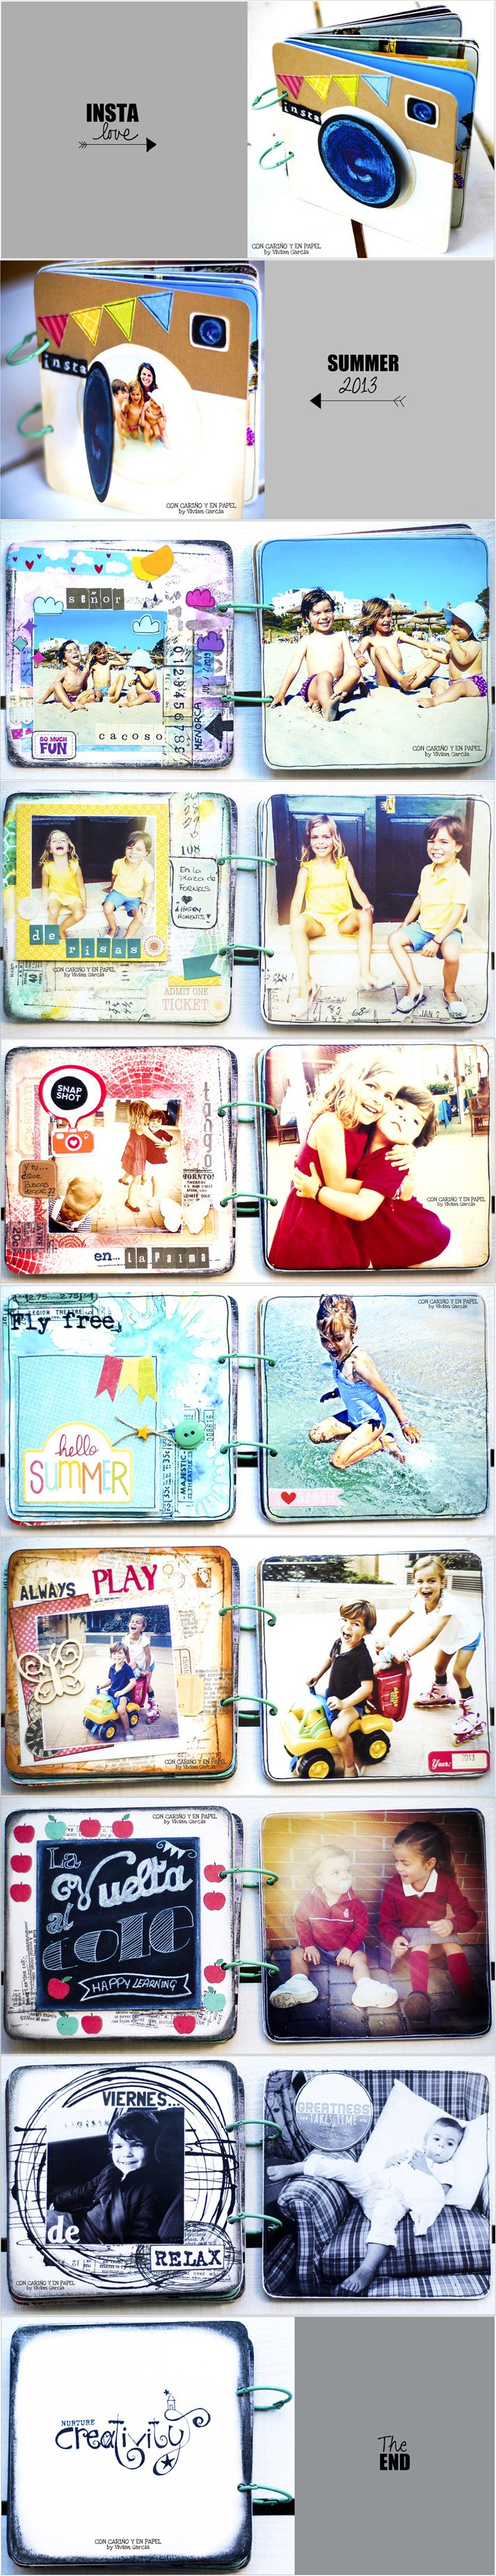 Love this Instagram mini scrapbook. Will make this